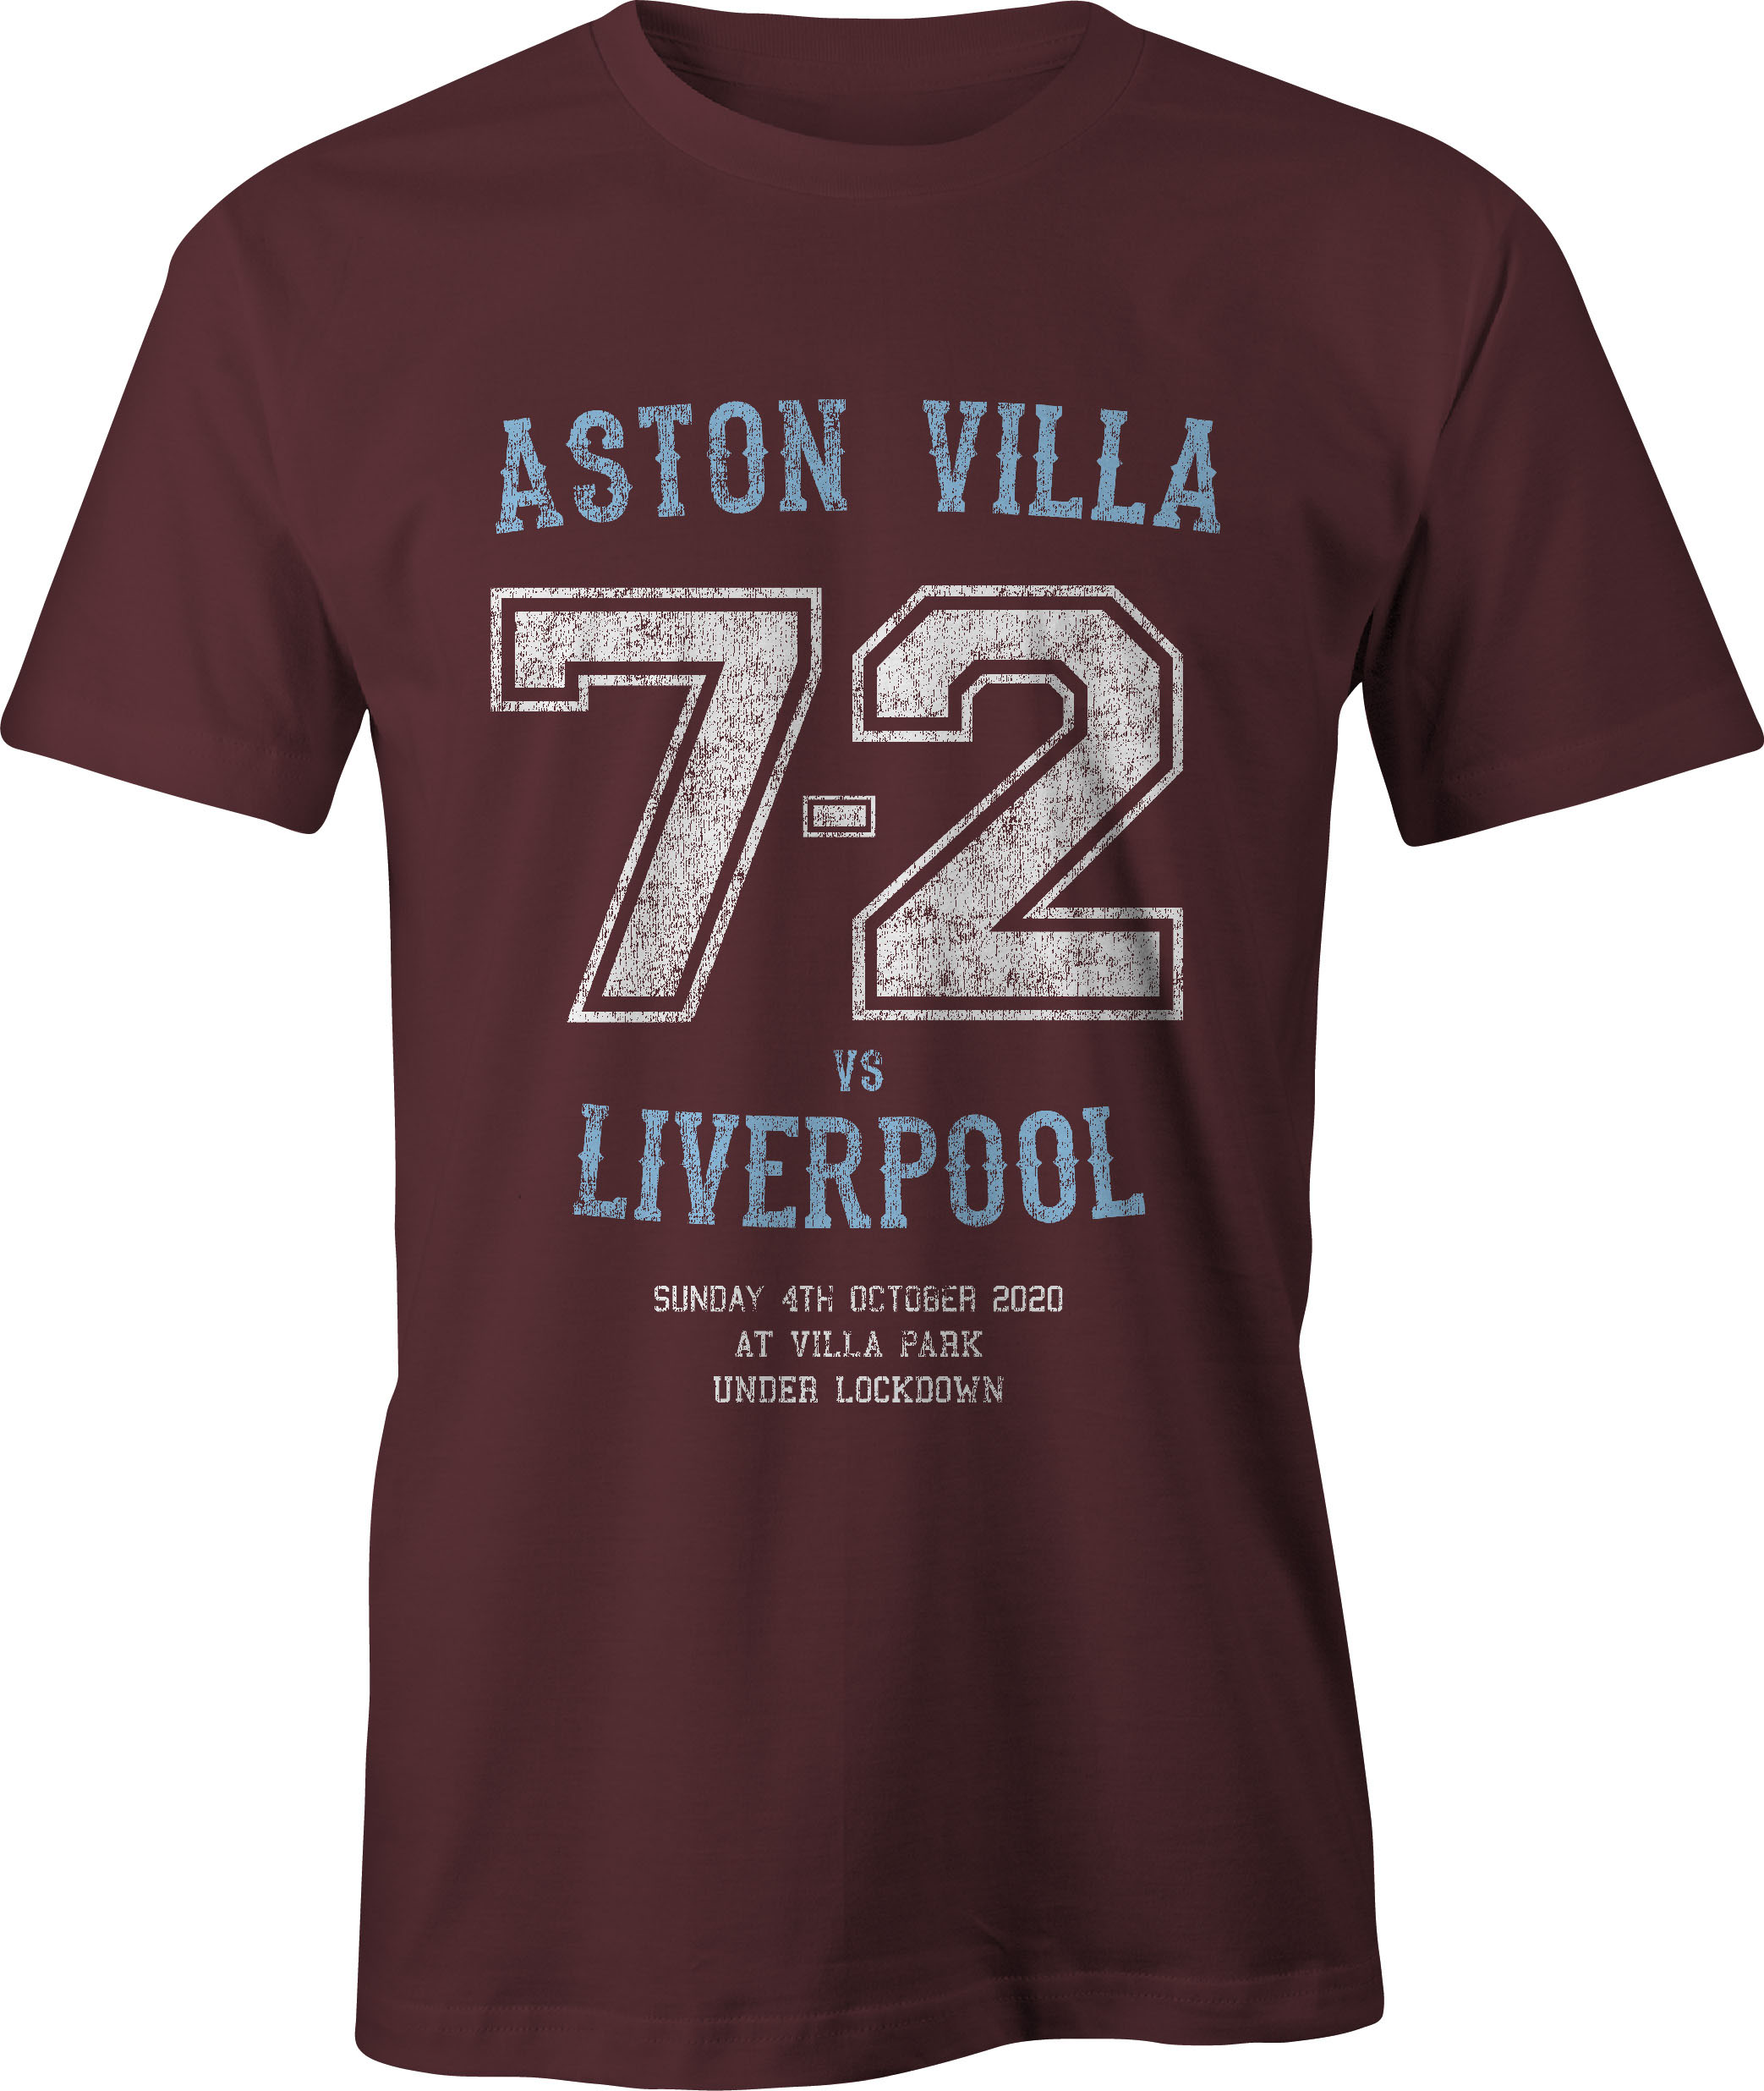 Aston Villa vs Liverpool 7-2 T Shirt – Adults' & Children ...